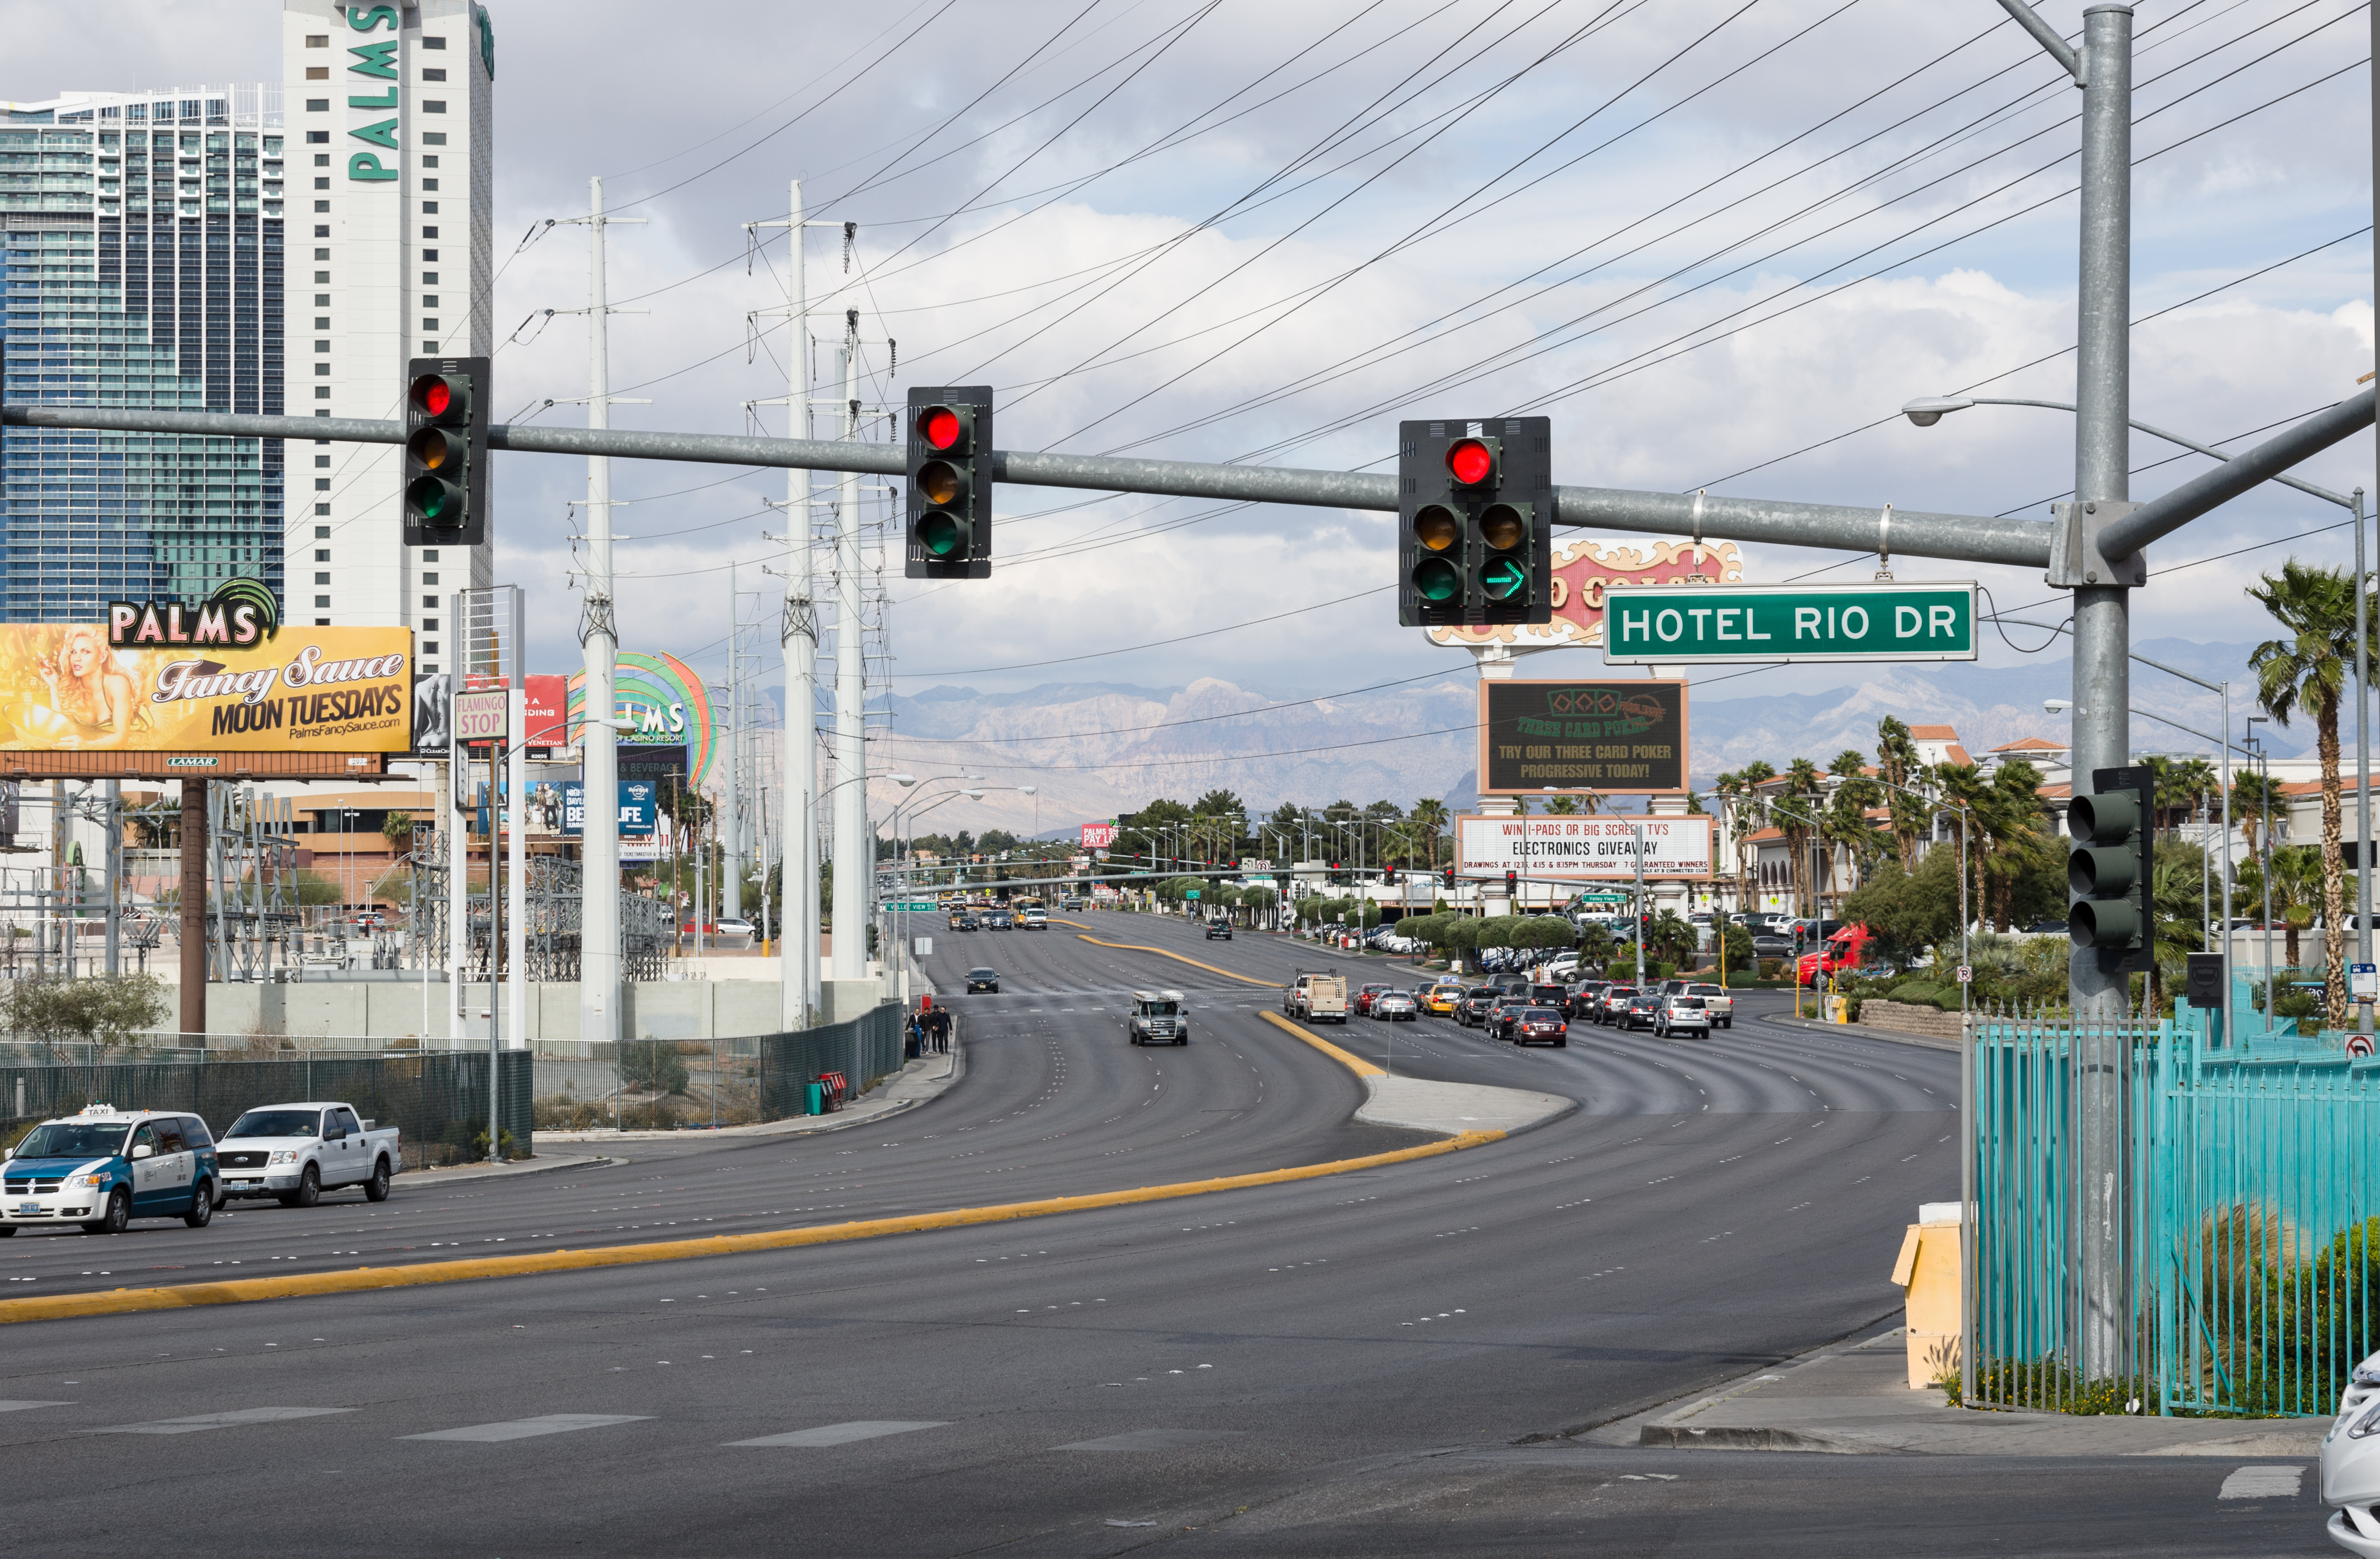 File Las Vegas Flamingo Rd And Hotel Rio Dr Intersection Jpg Wikimedia Commons